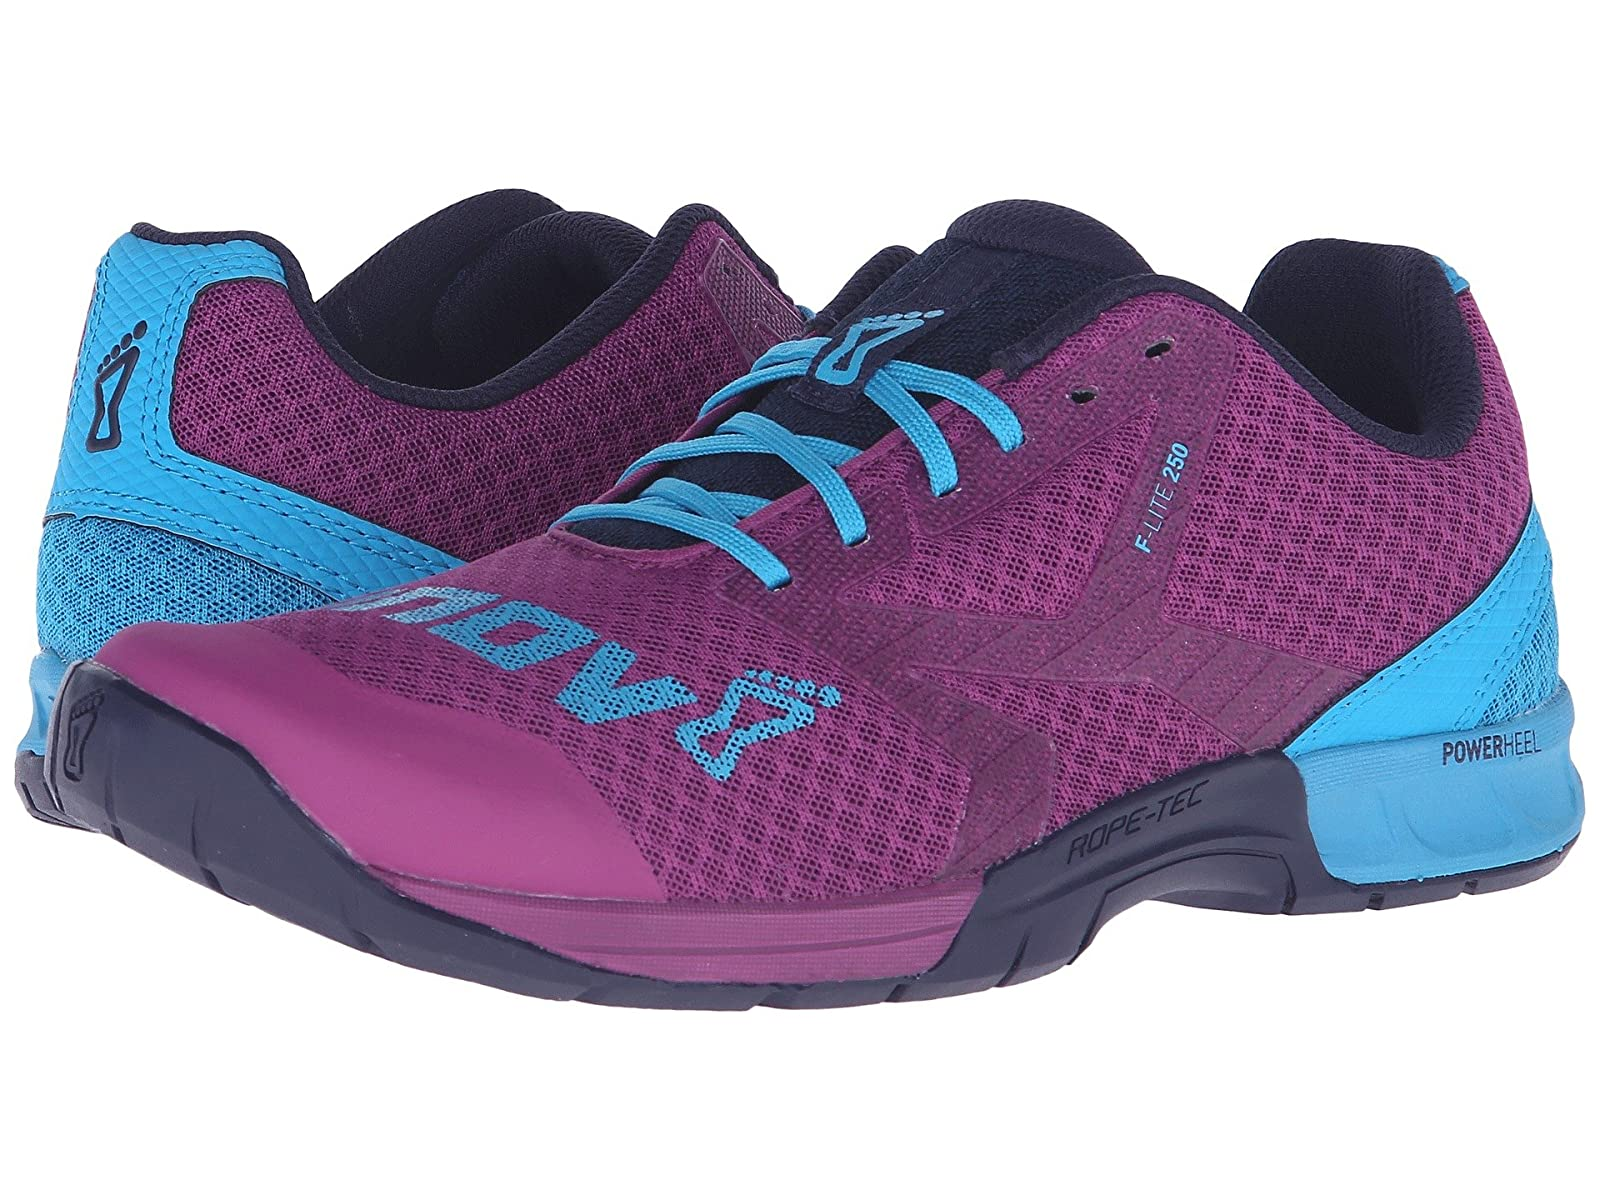 inov-8 F-Lite™ 250Cheap and distinctive eye-catching shoes